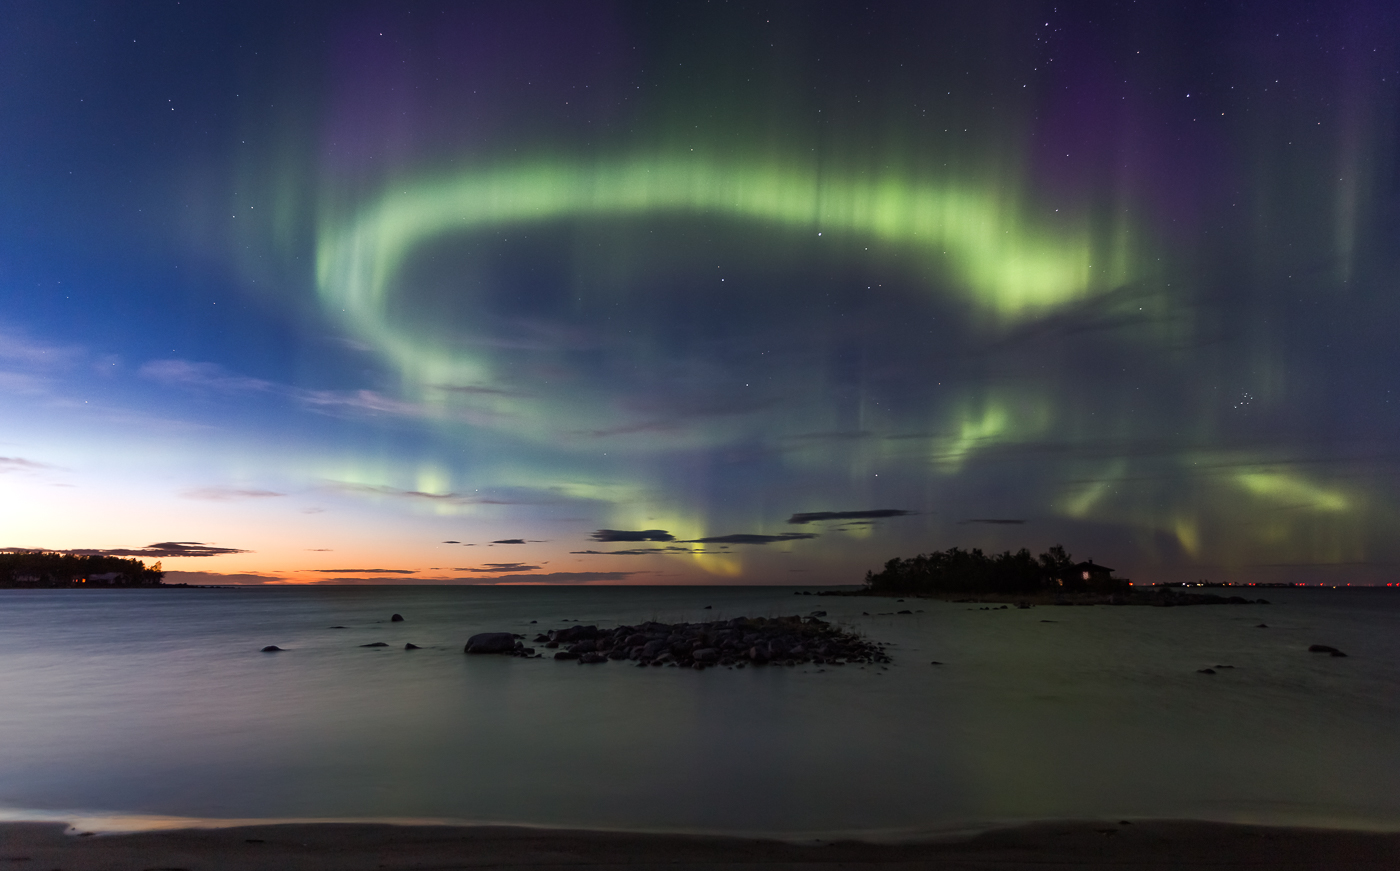 Northern lights over West coast